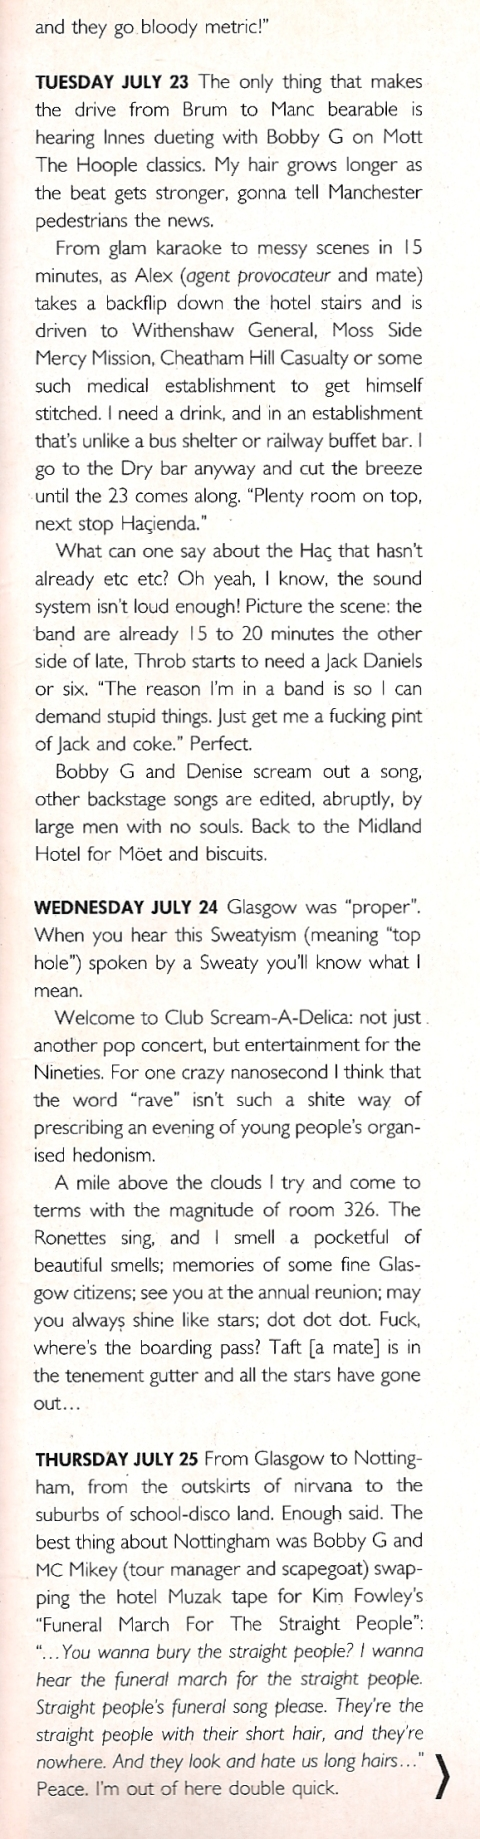 Andrew Weatherall's Primal Scream Tour Diary, The Face 1991